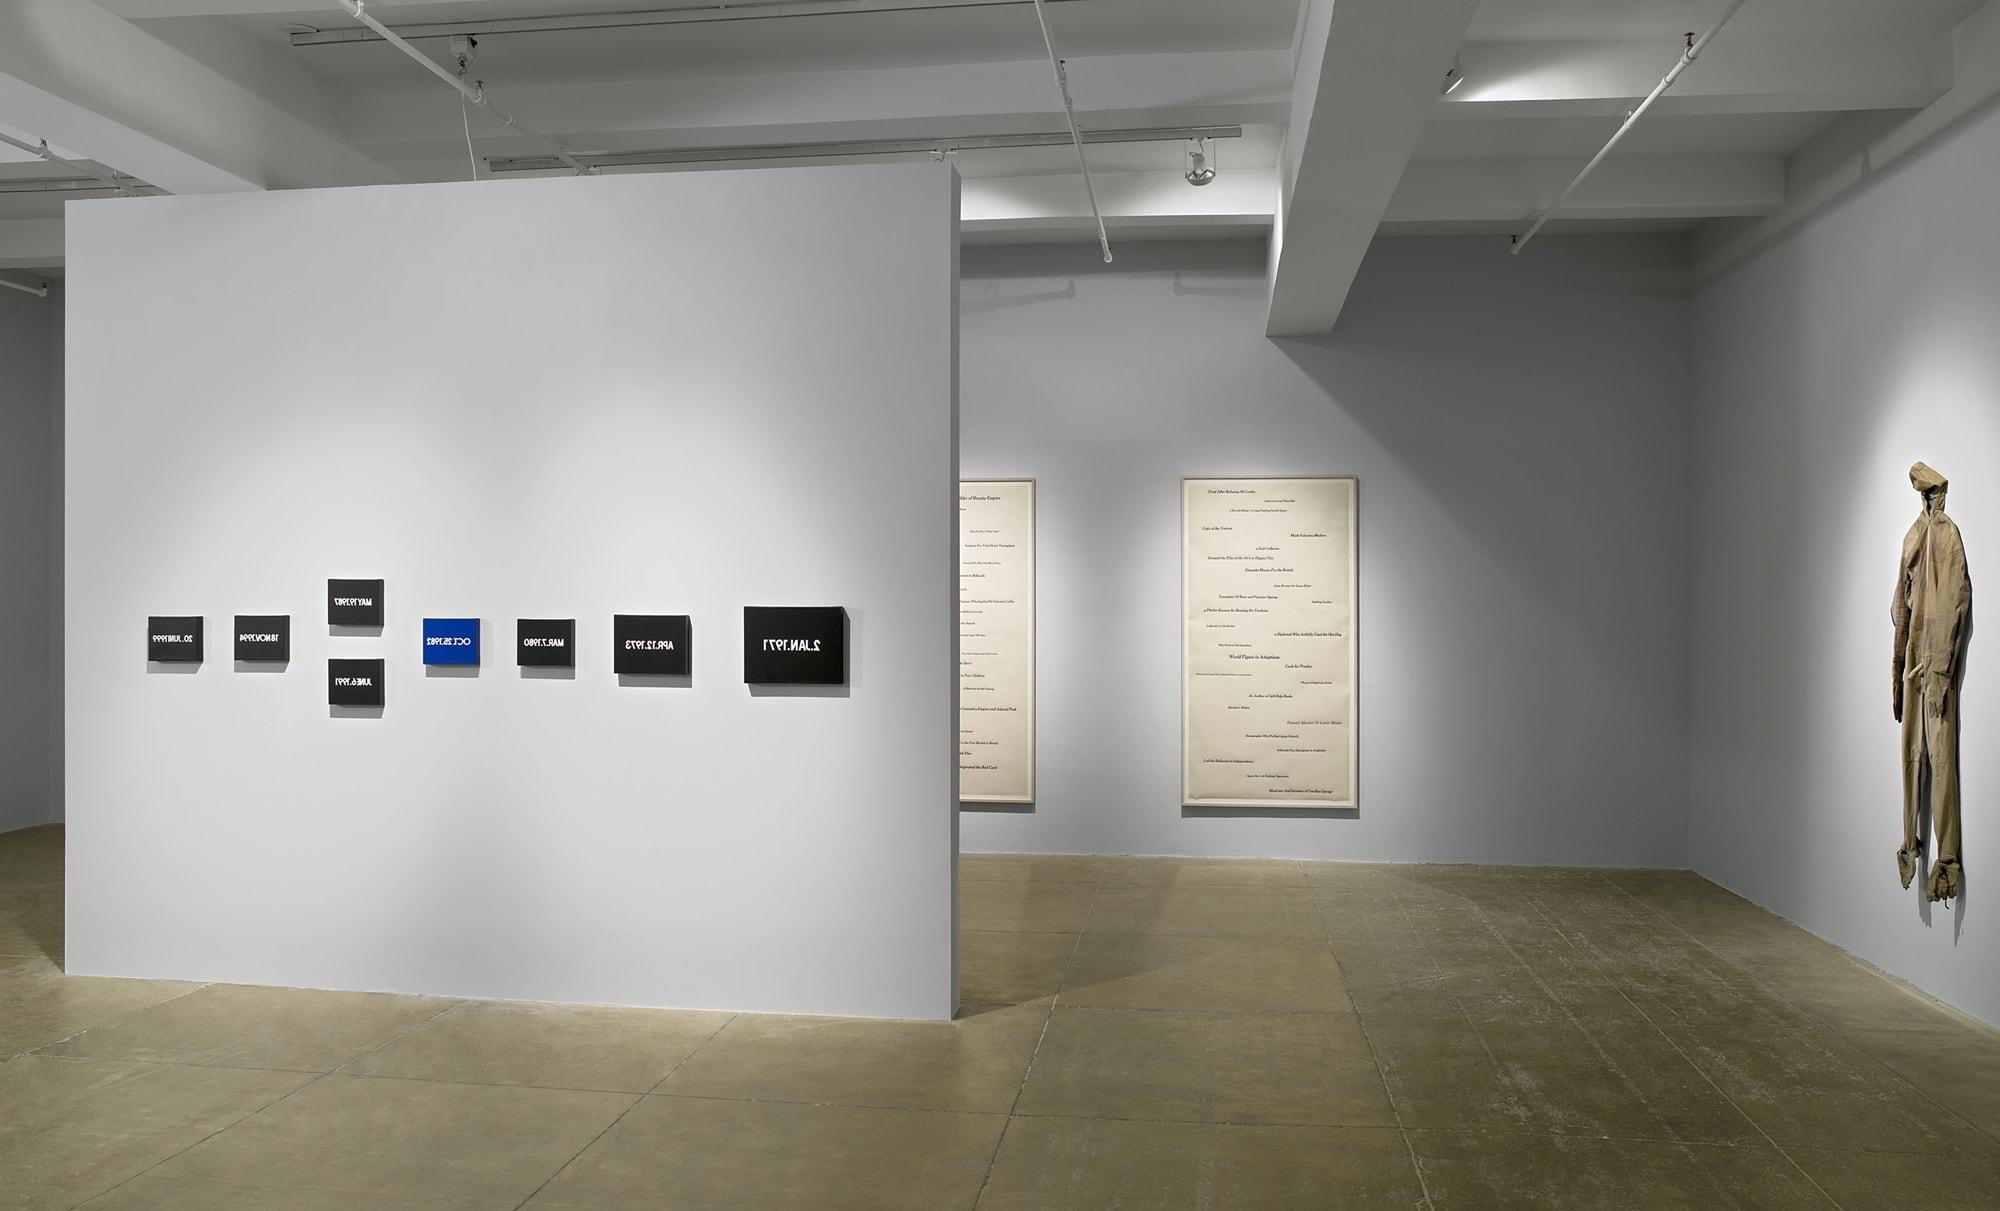 A floating wall displays 8 works with backwards text. Behind the wall are two large framed works with text on paper, and to the right hangs a beige full-body suit.